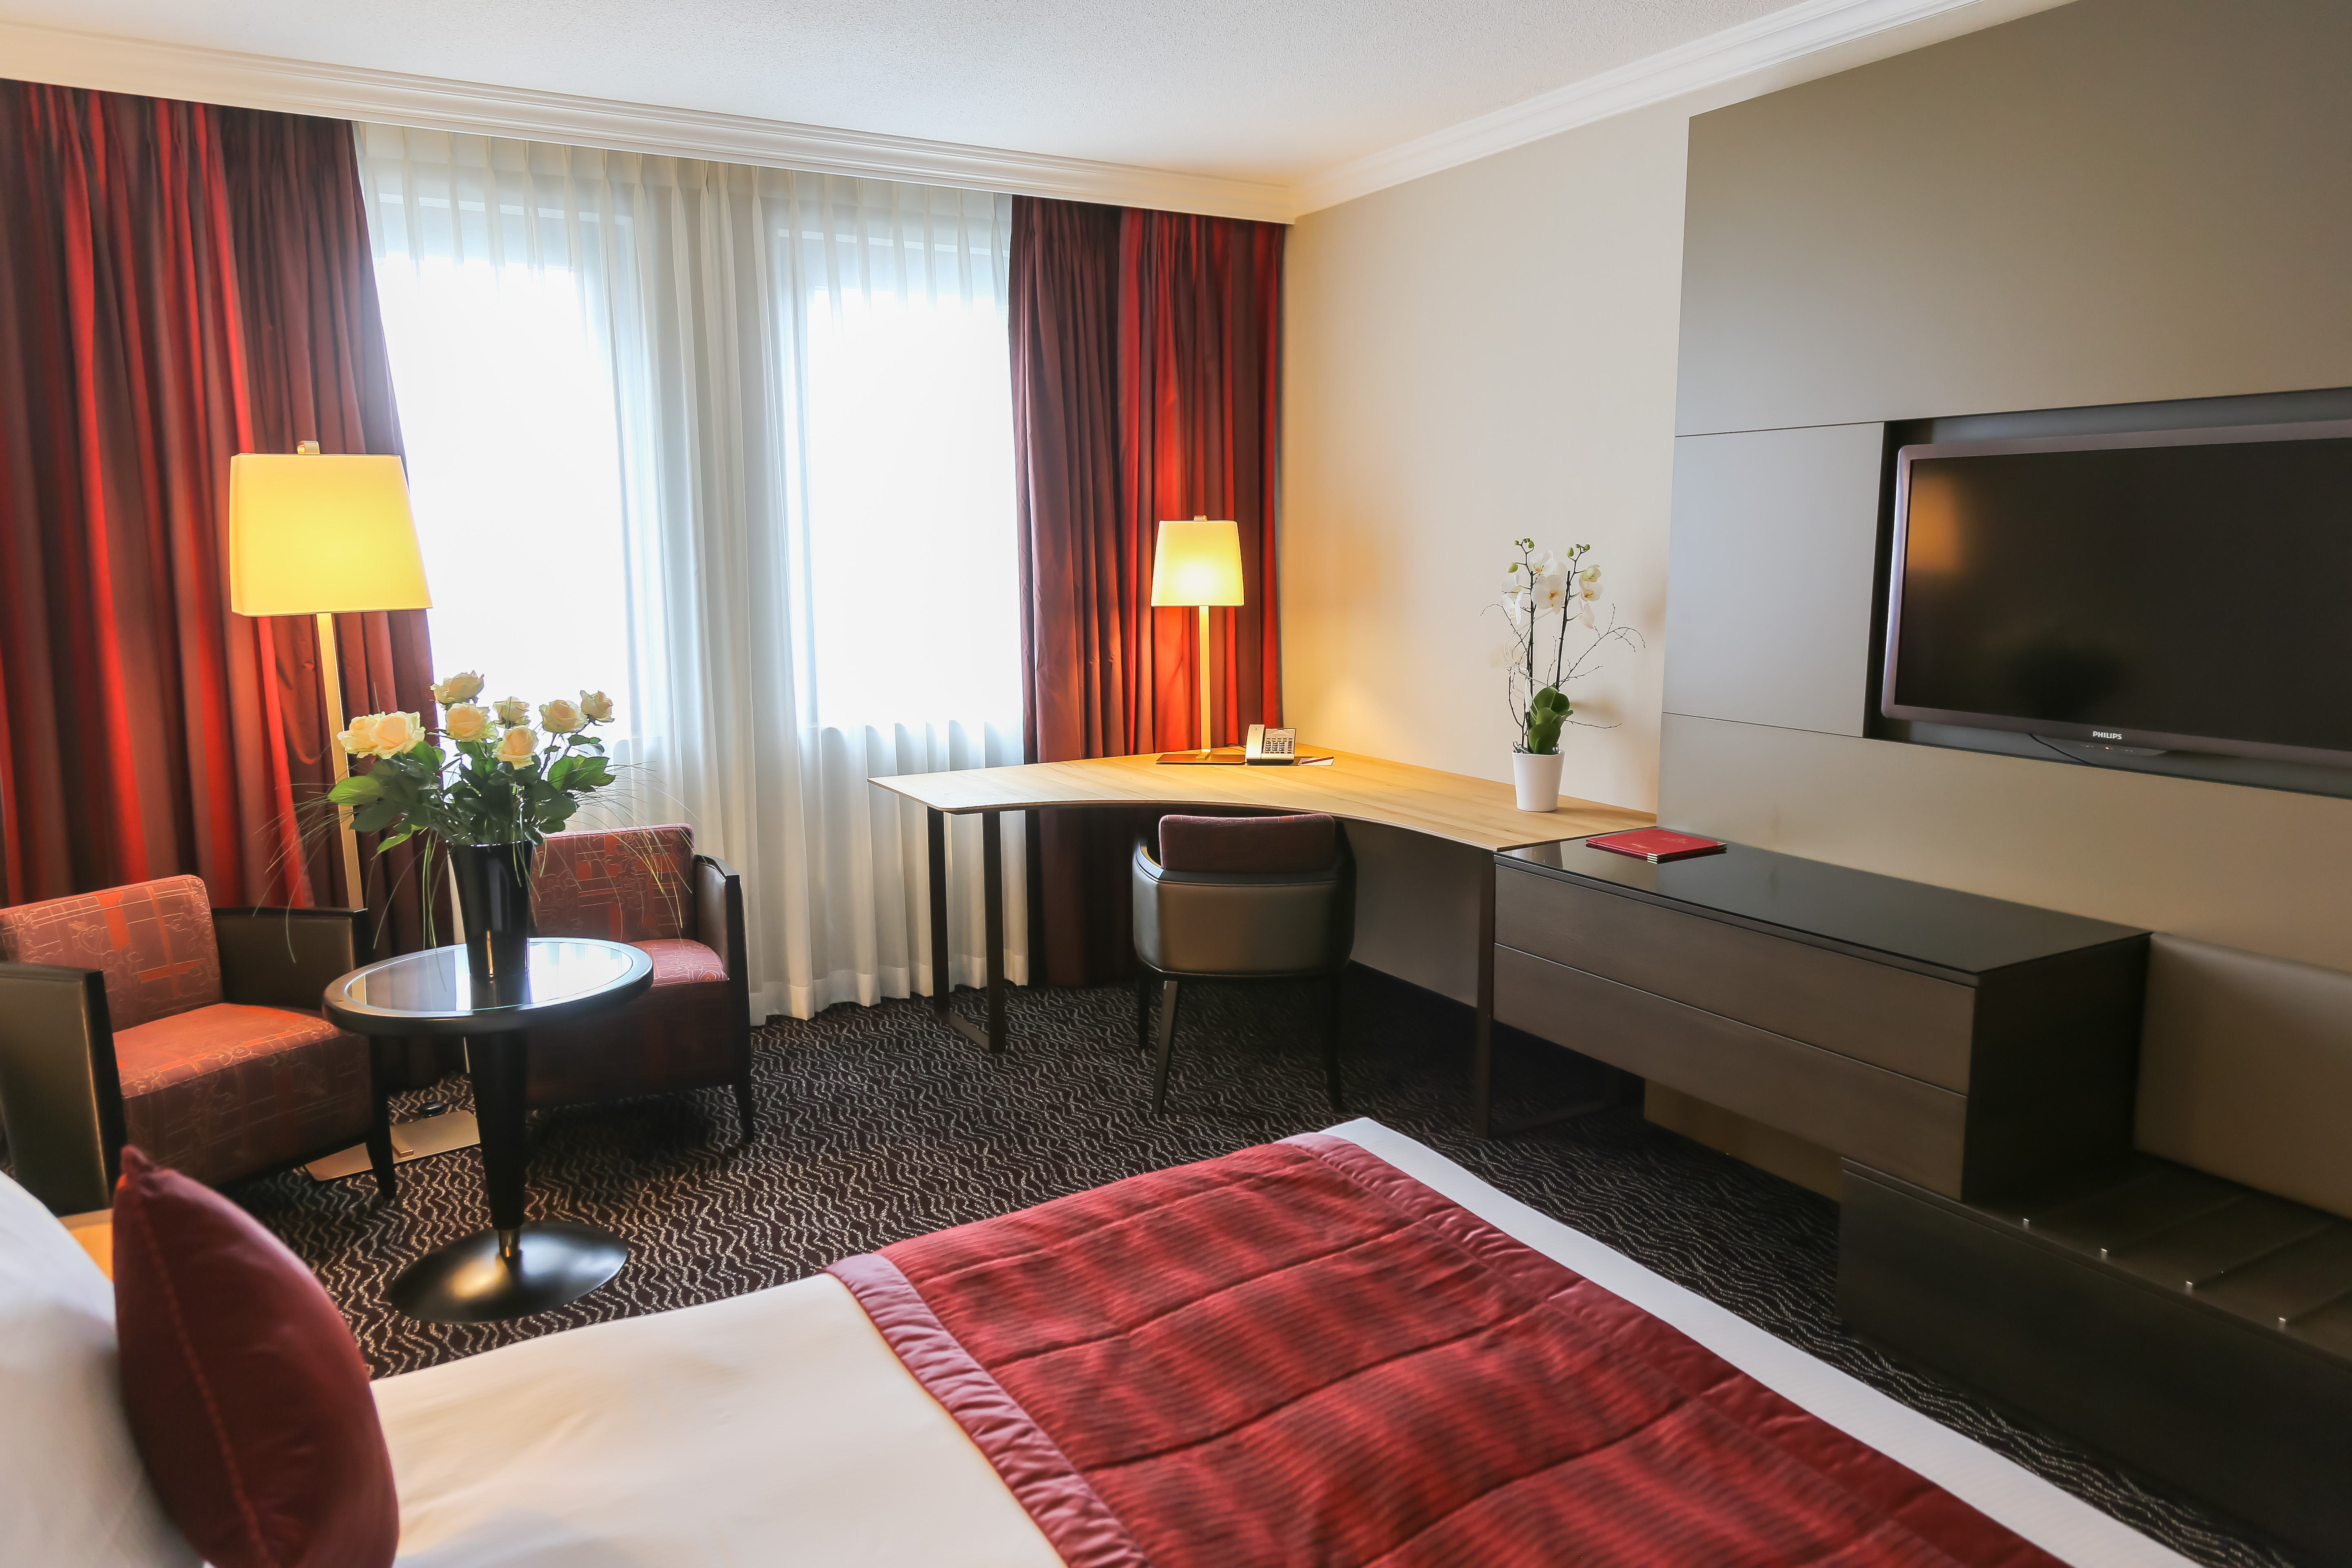 Le Royal Hotels & Resorts - Luxembourg, Luxembourg